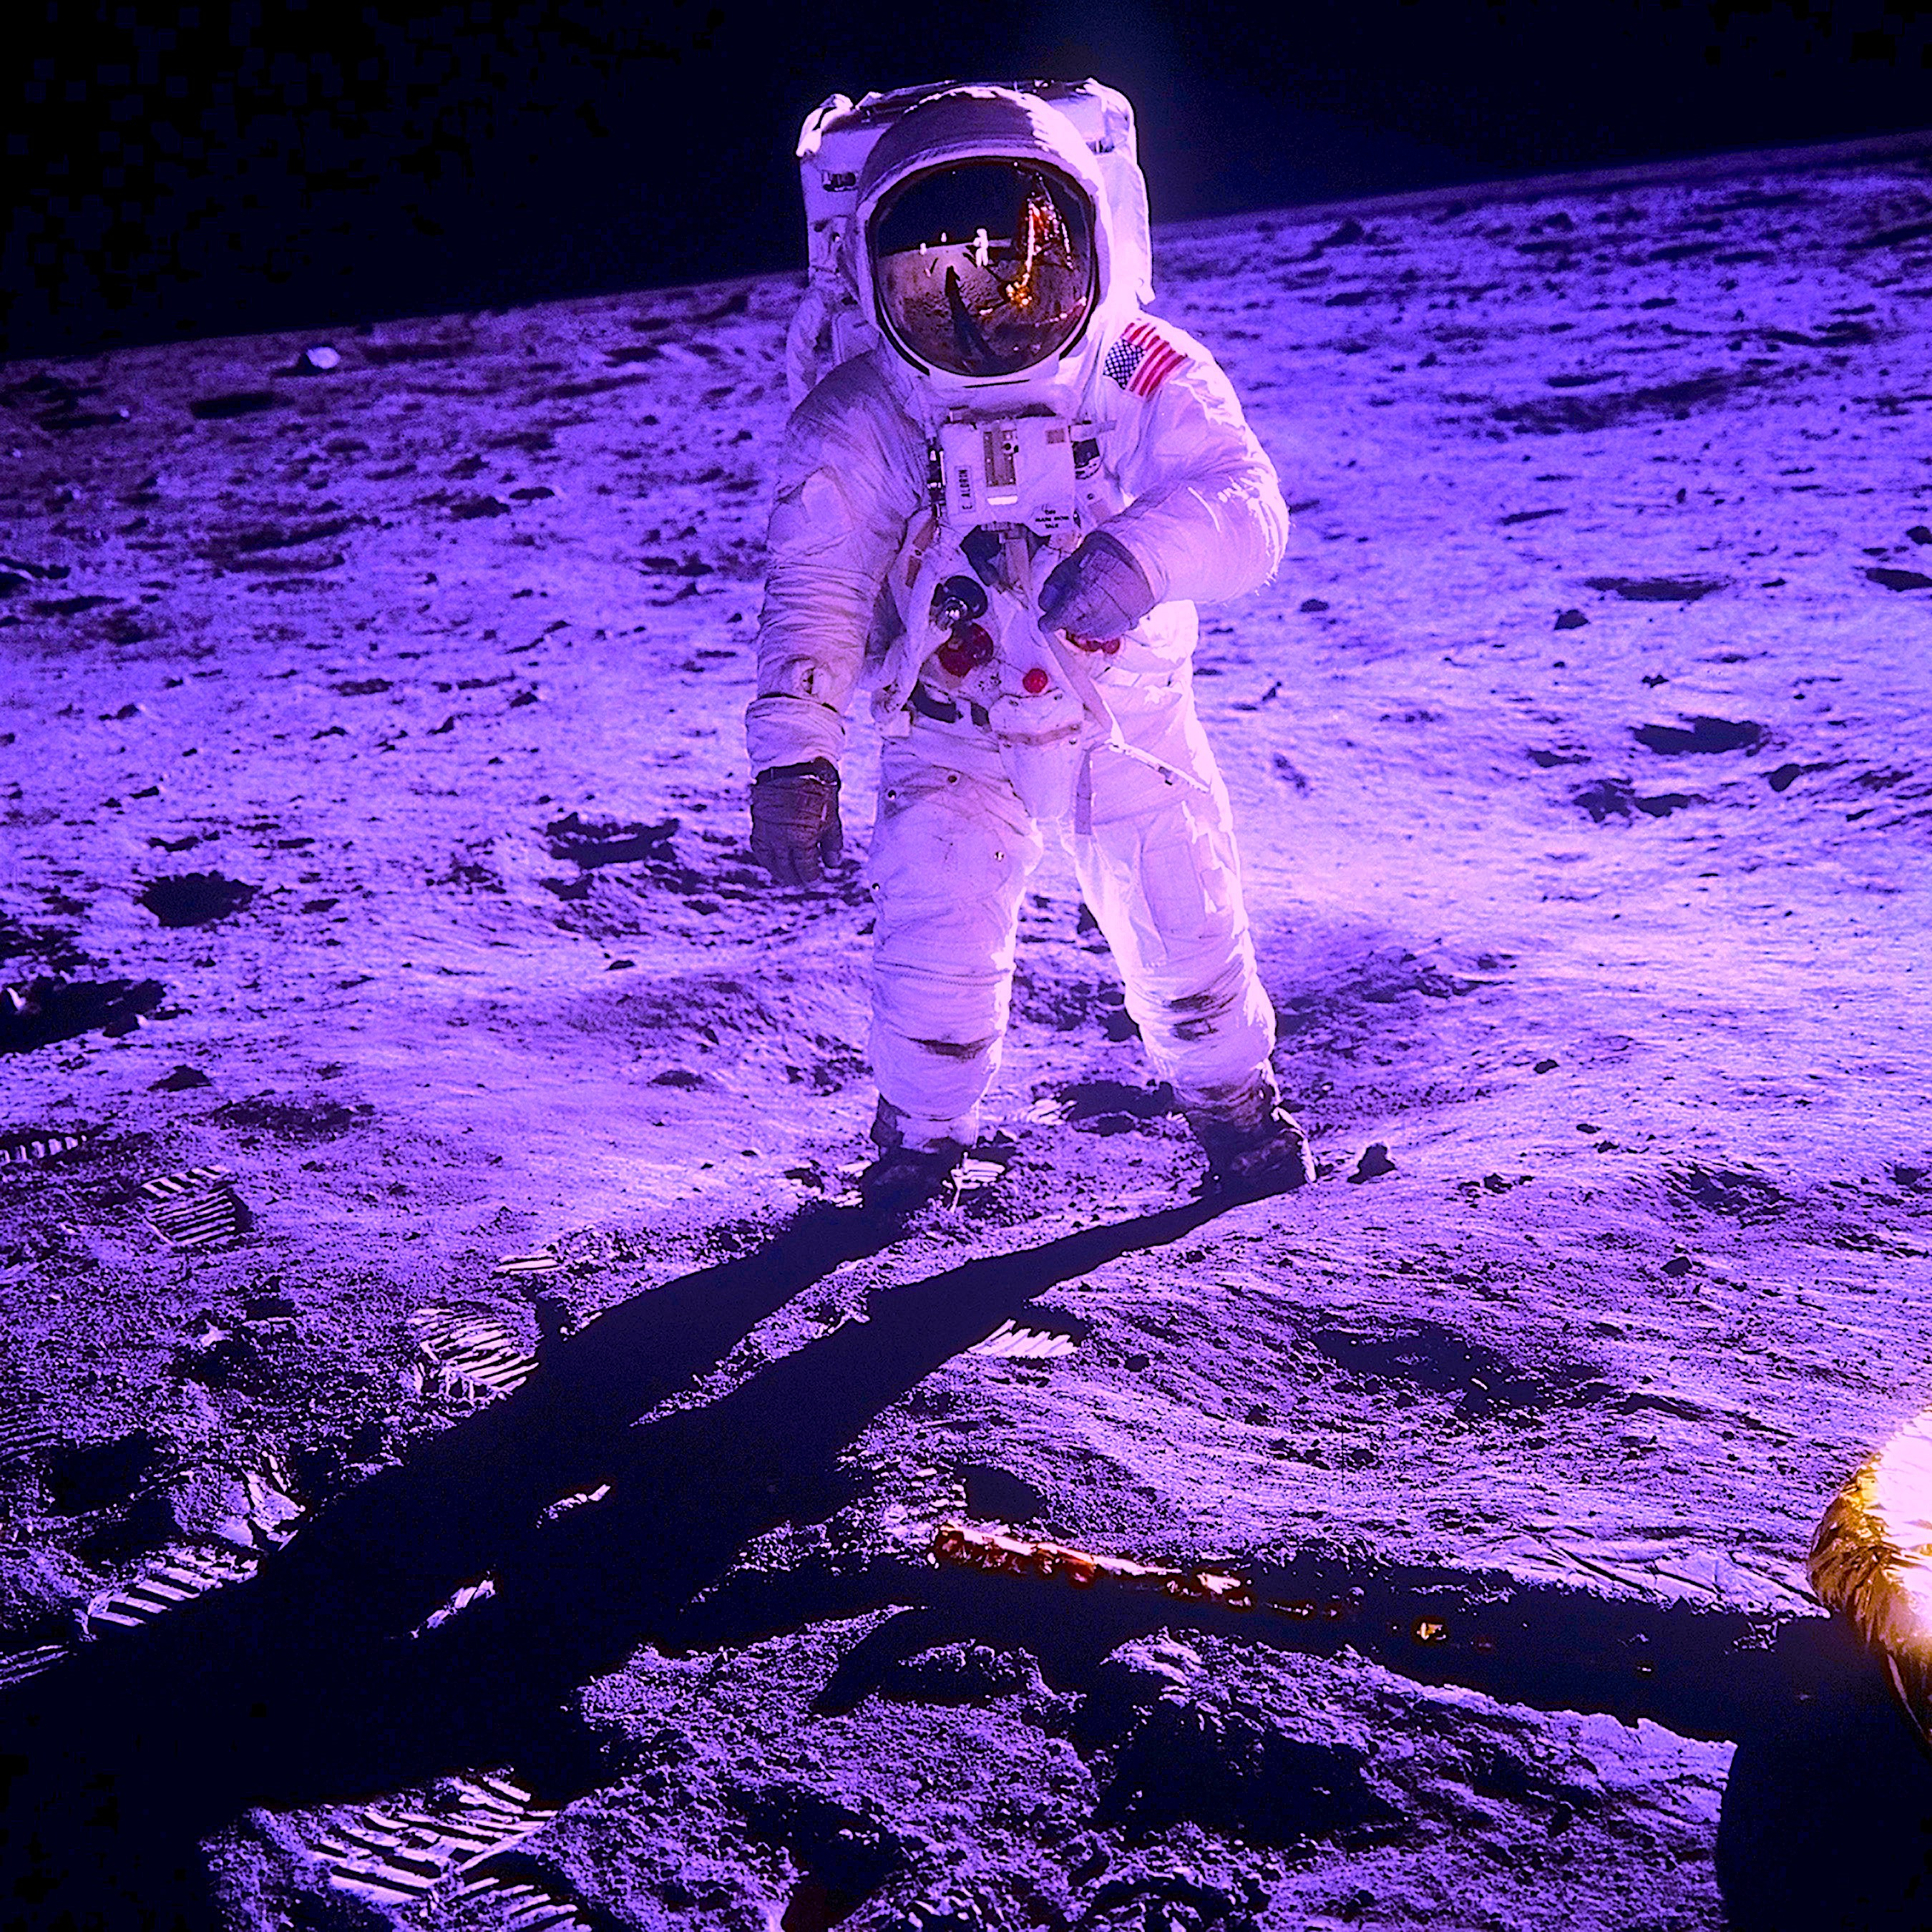 Apollo 11 astronaut Buzz Aldrin walking on the surface of the moon. Photo taken on 20 July 1969.